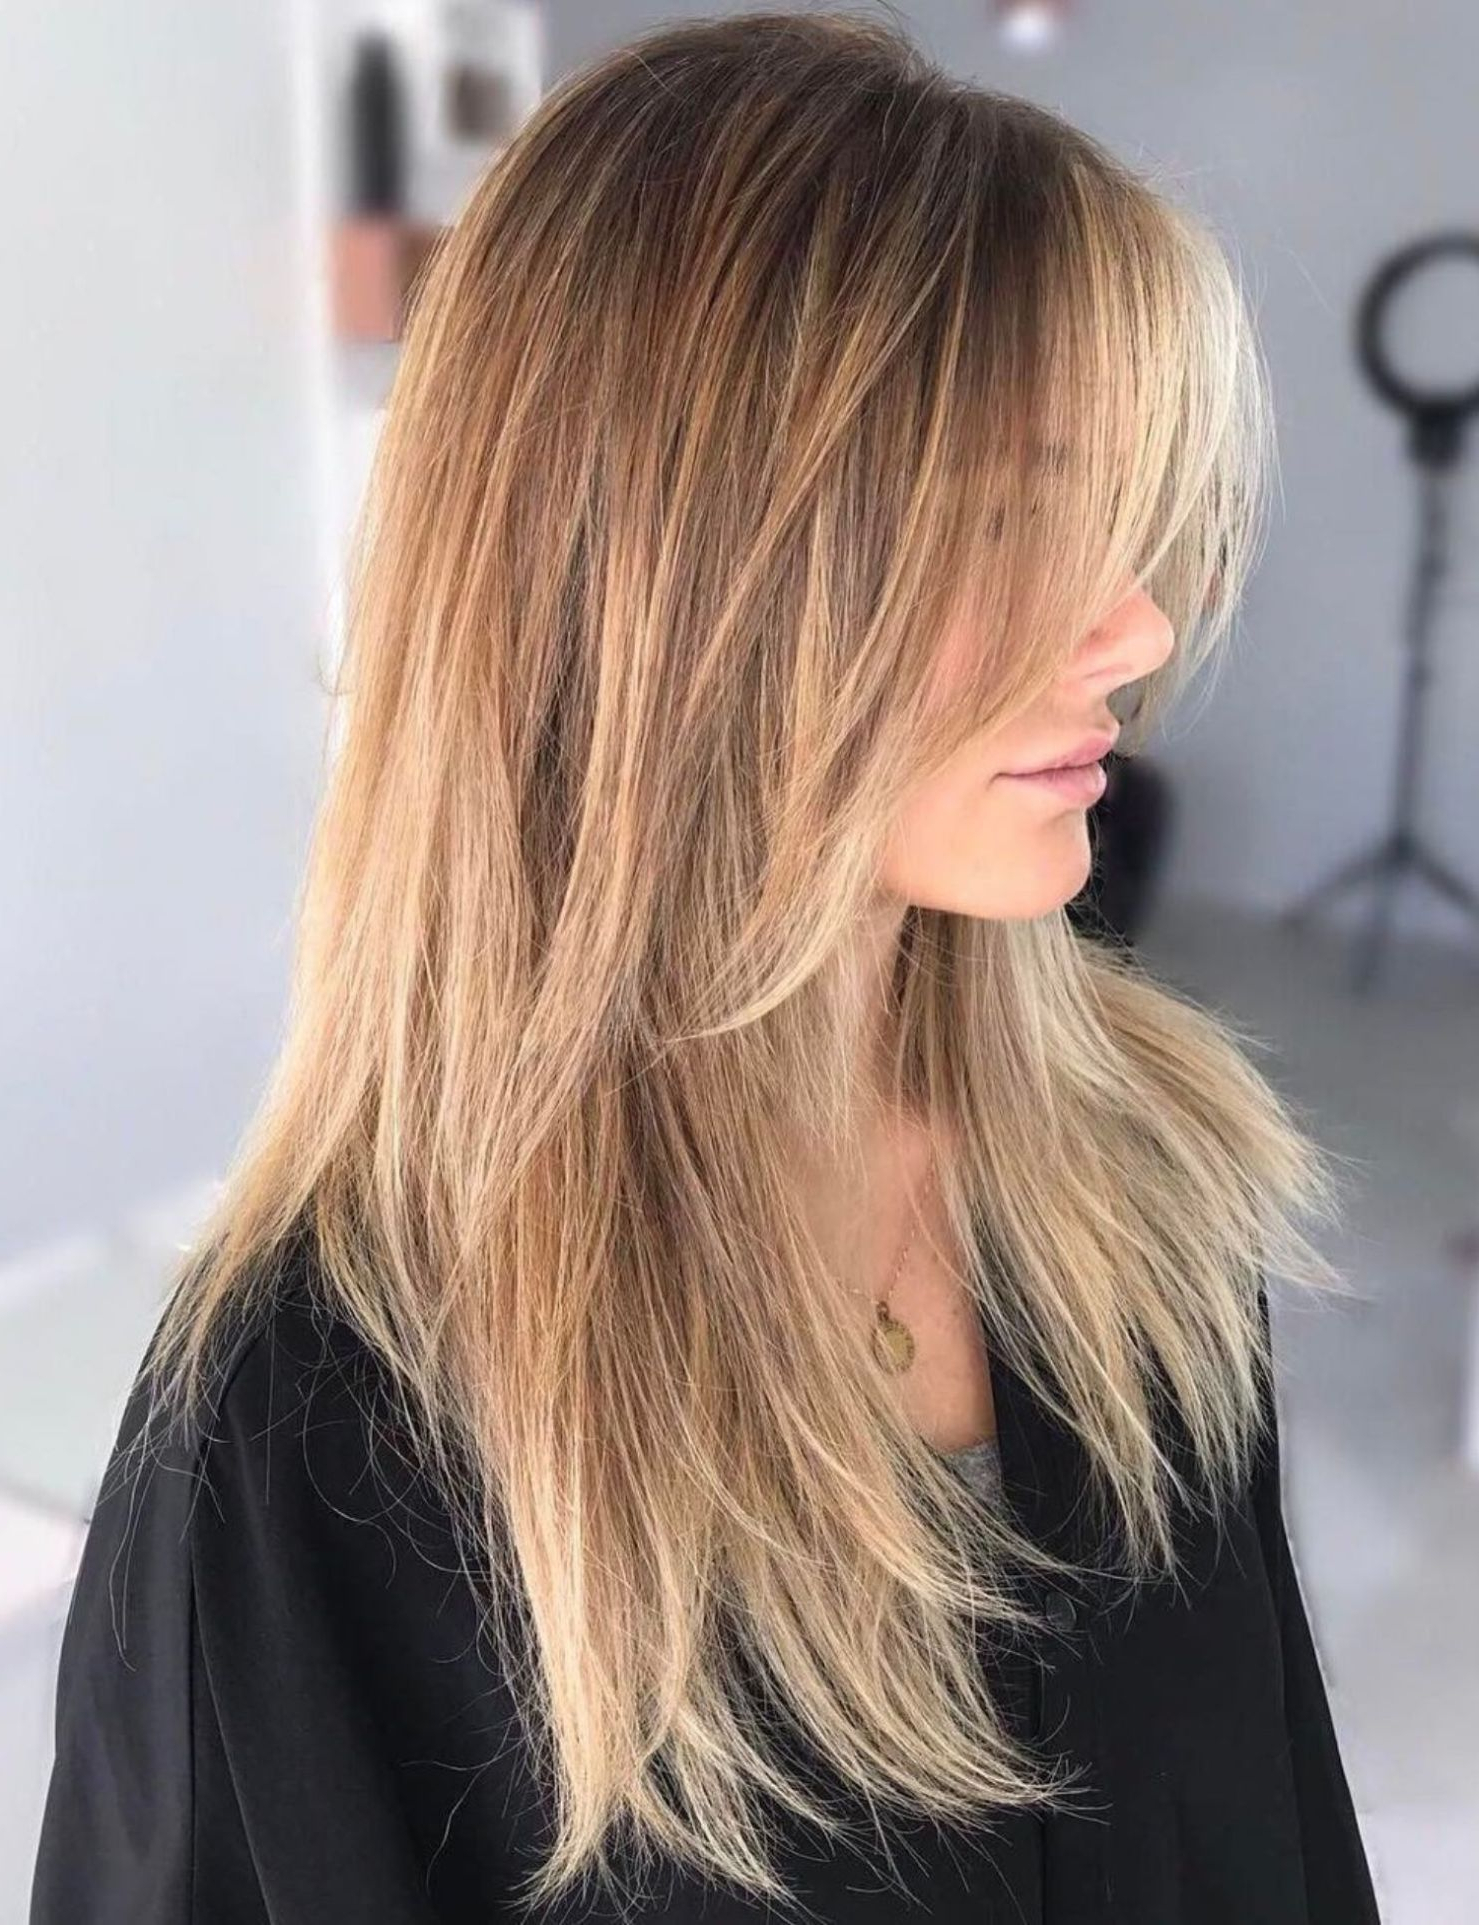 Pin On Hair & Makeup Pertaining To Famous Longer Tousled Caramel Blonde Shag Haircuts (View 15 of 20)